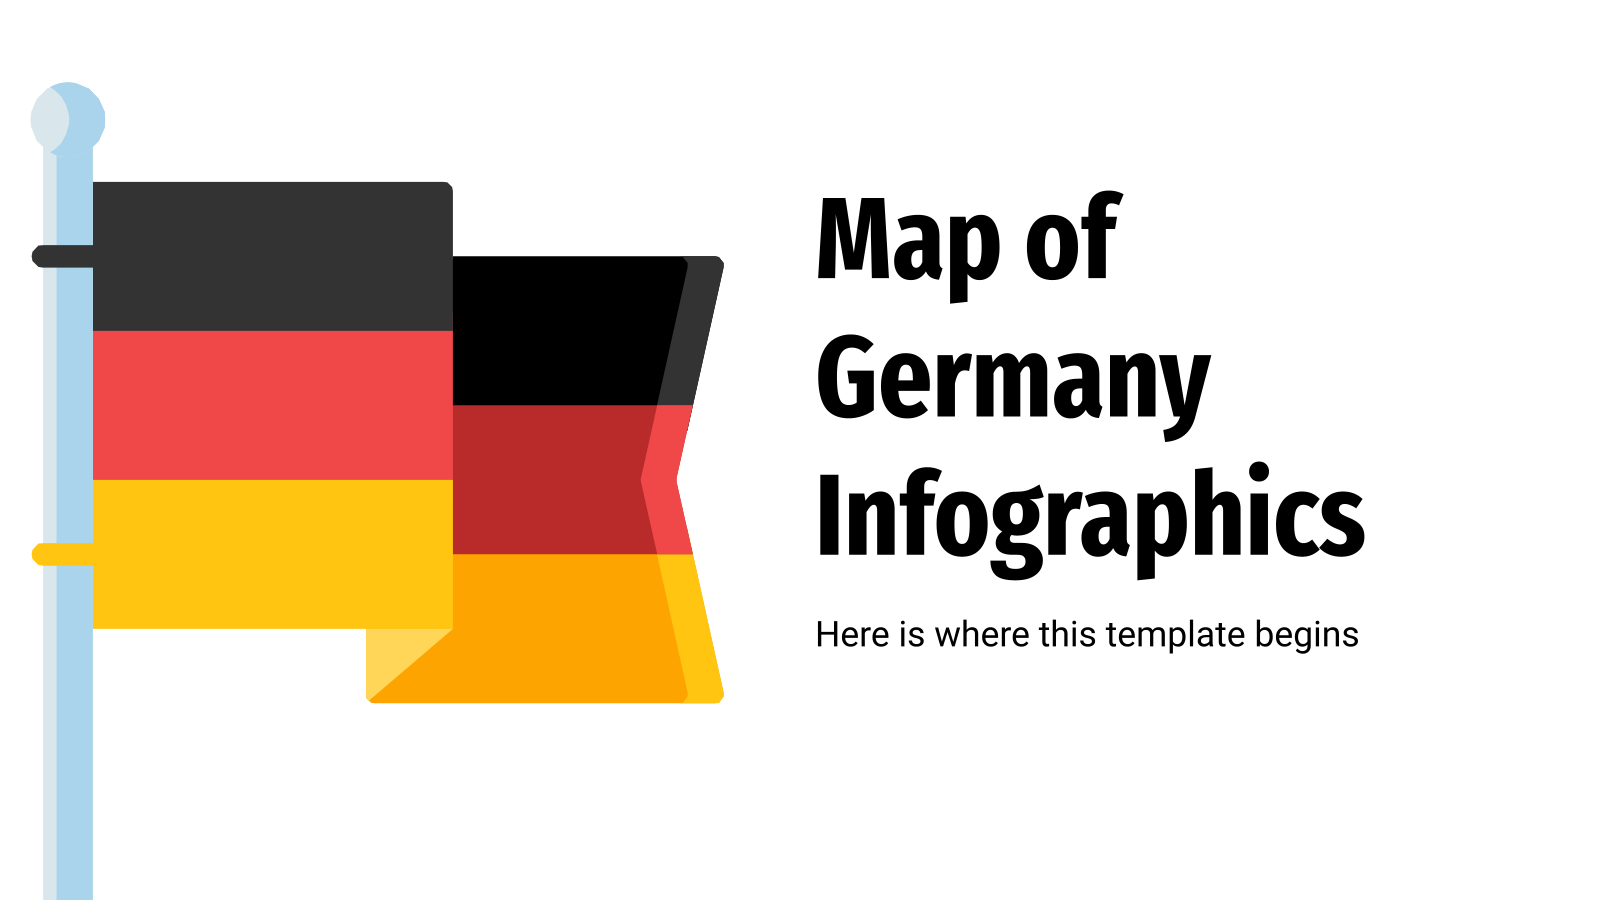 Map of Germany Infographics presentation template